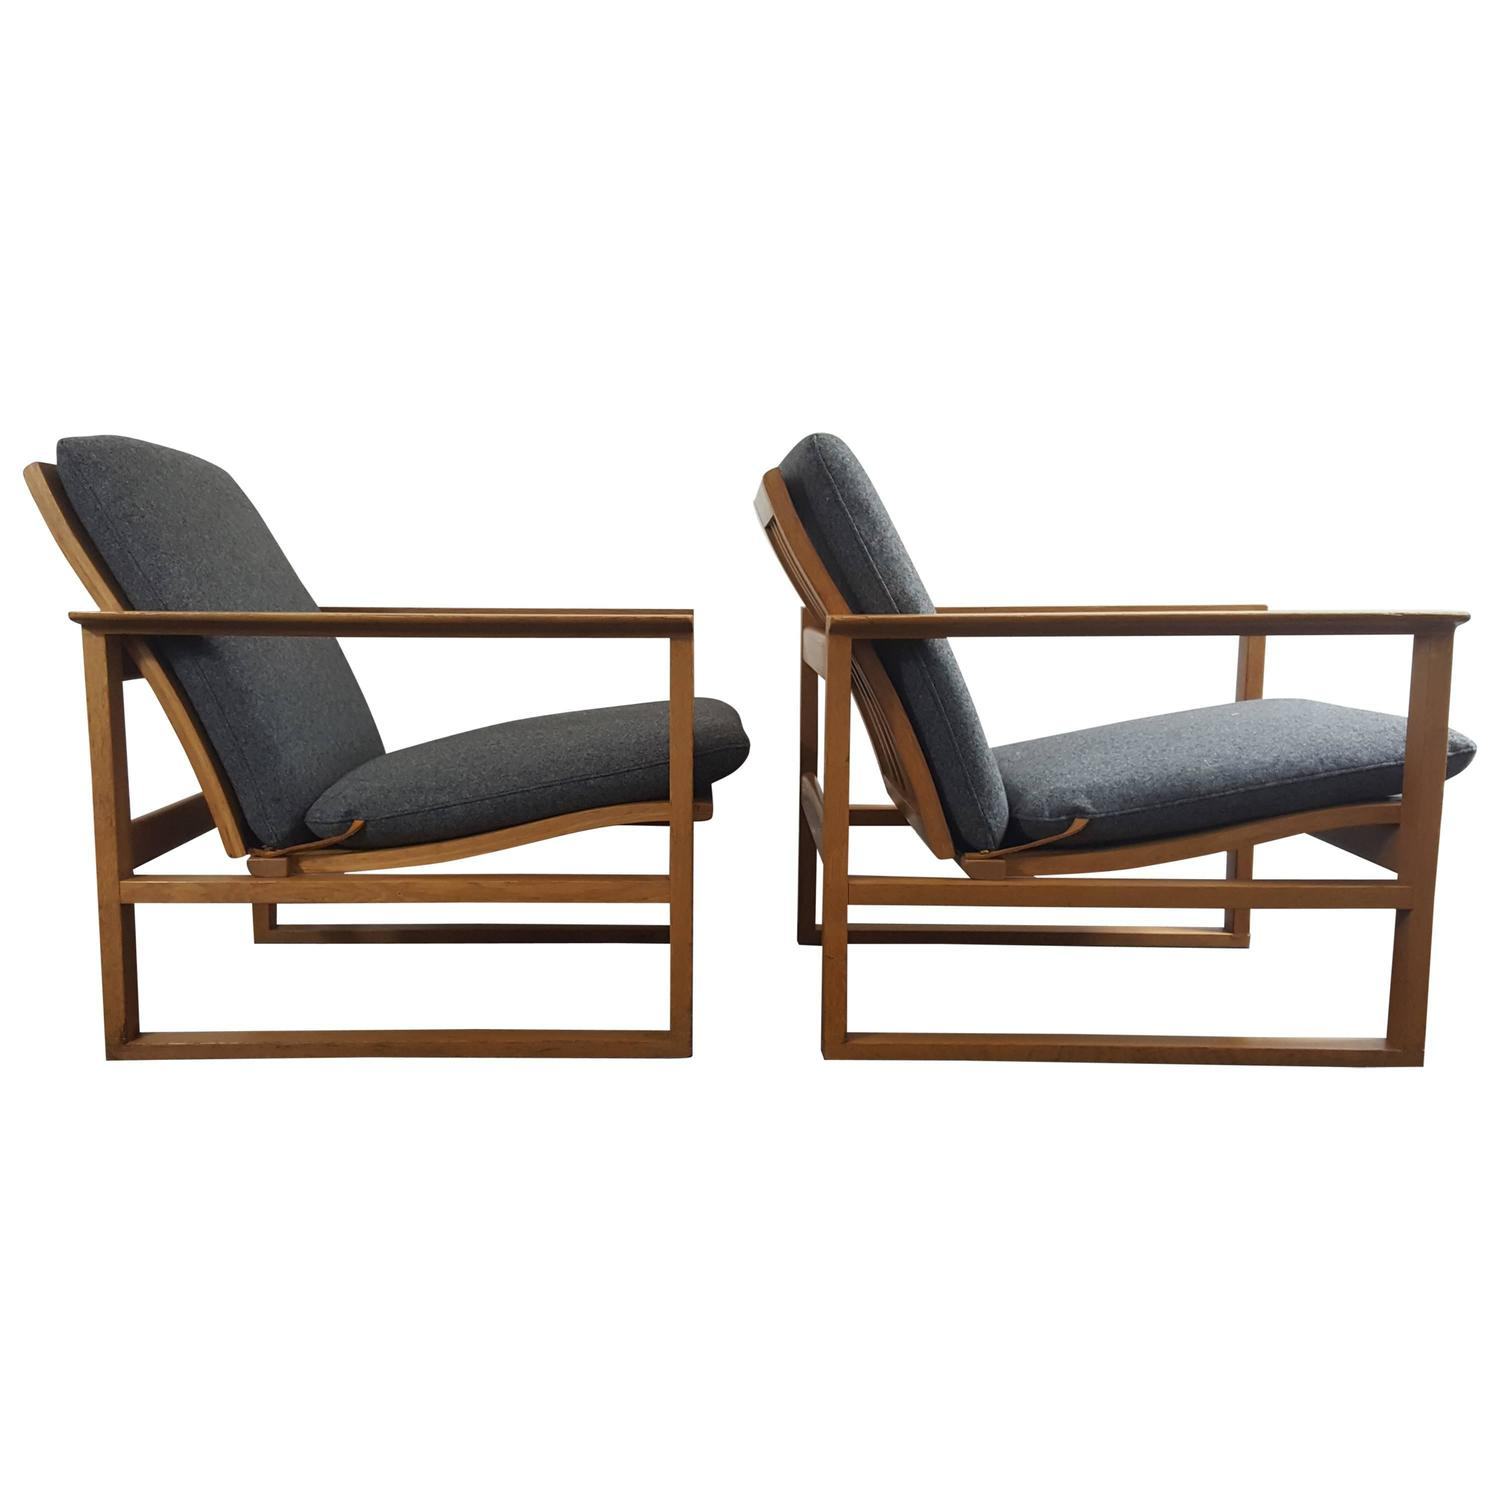 Of four chairs in oak and patinated cognac leather for sale at 1stdibs - B Rge Mogensen 2256 Oak Lounge Sled Chairs Designed 1956 For Frederica Furniture